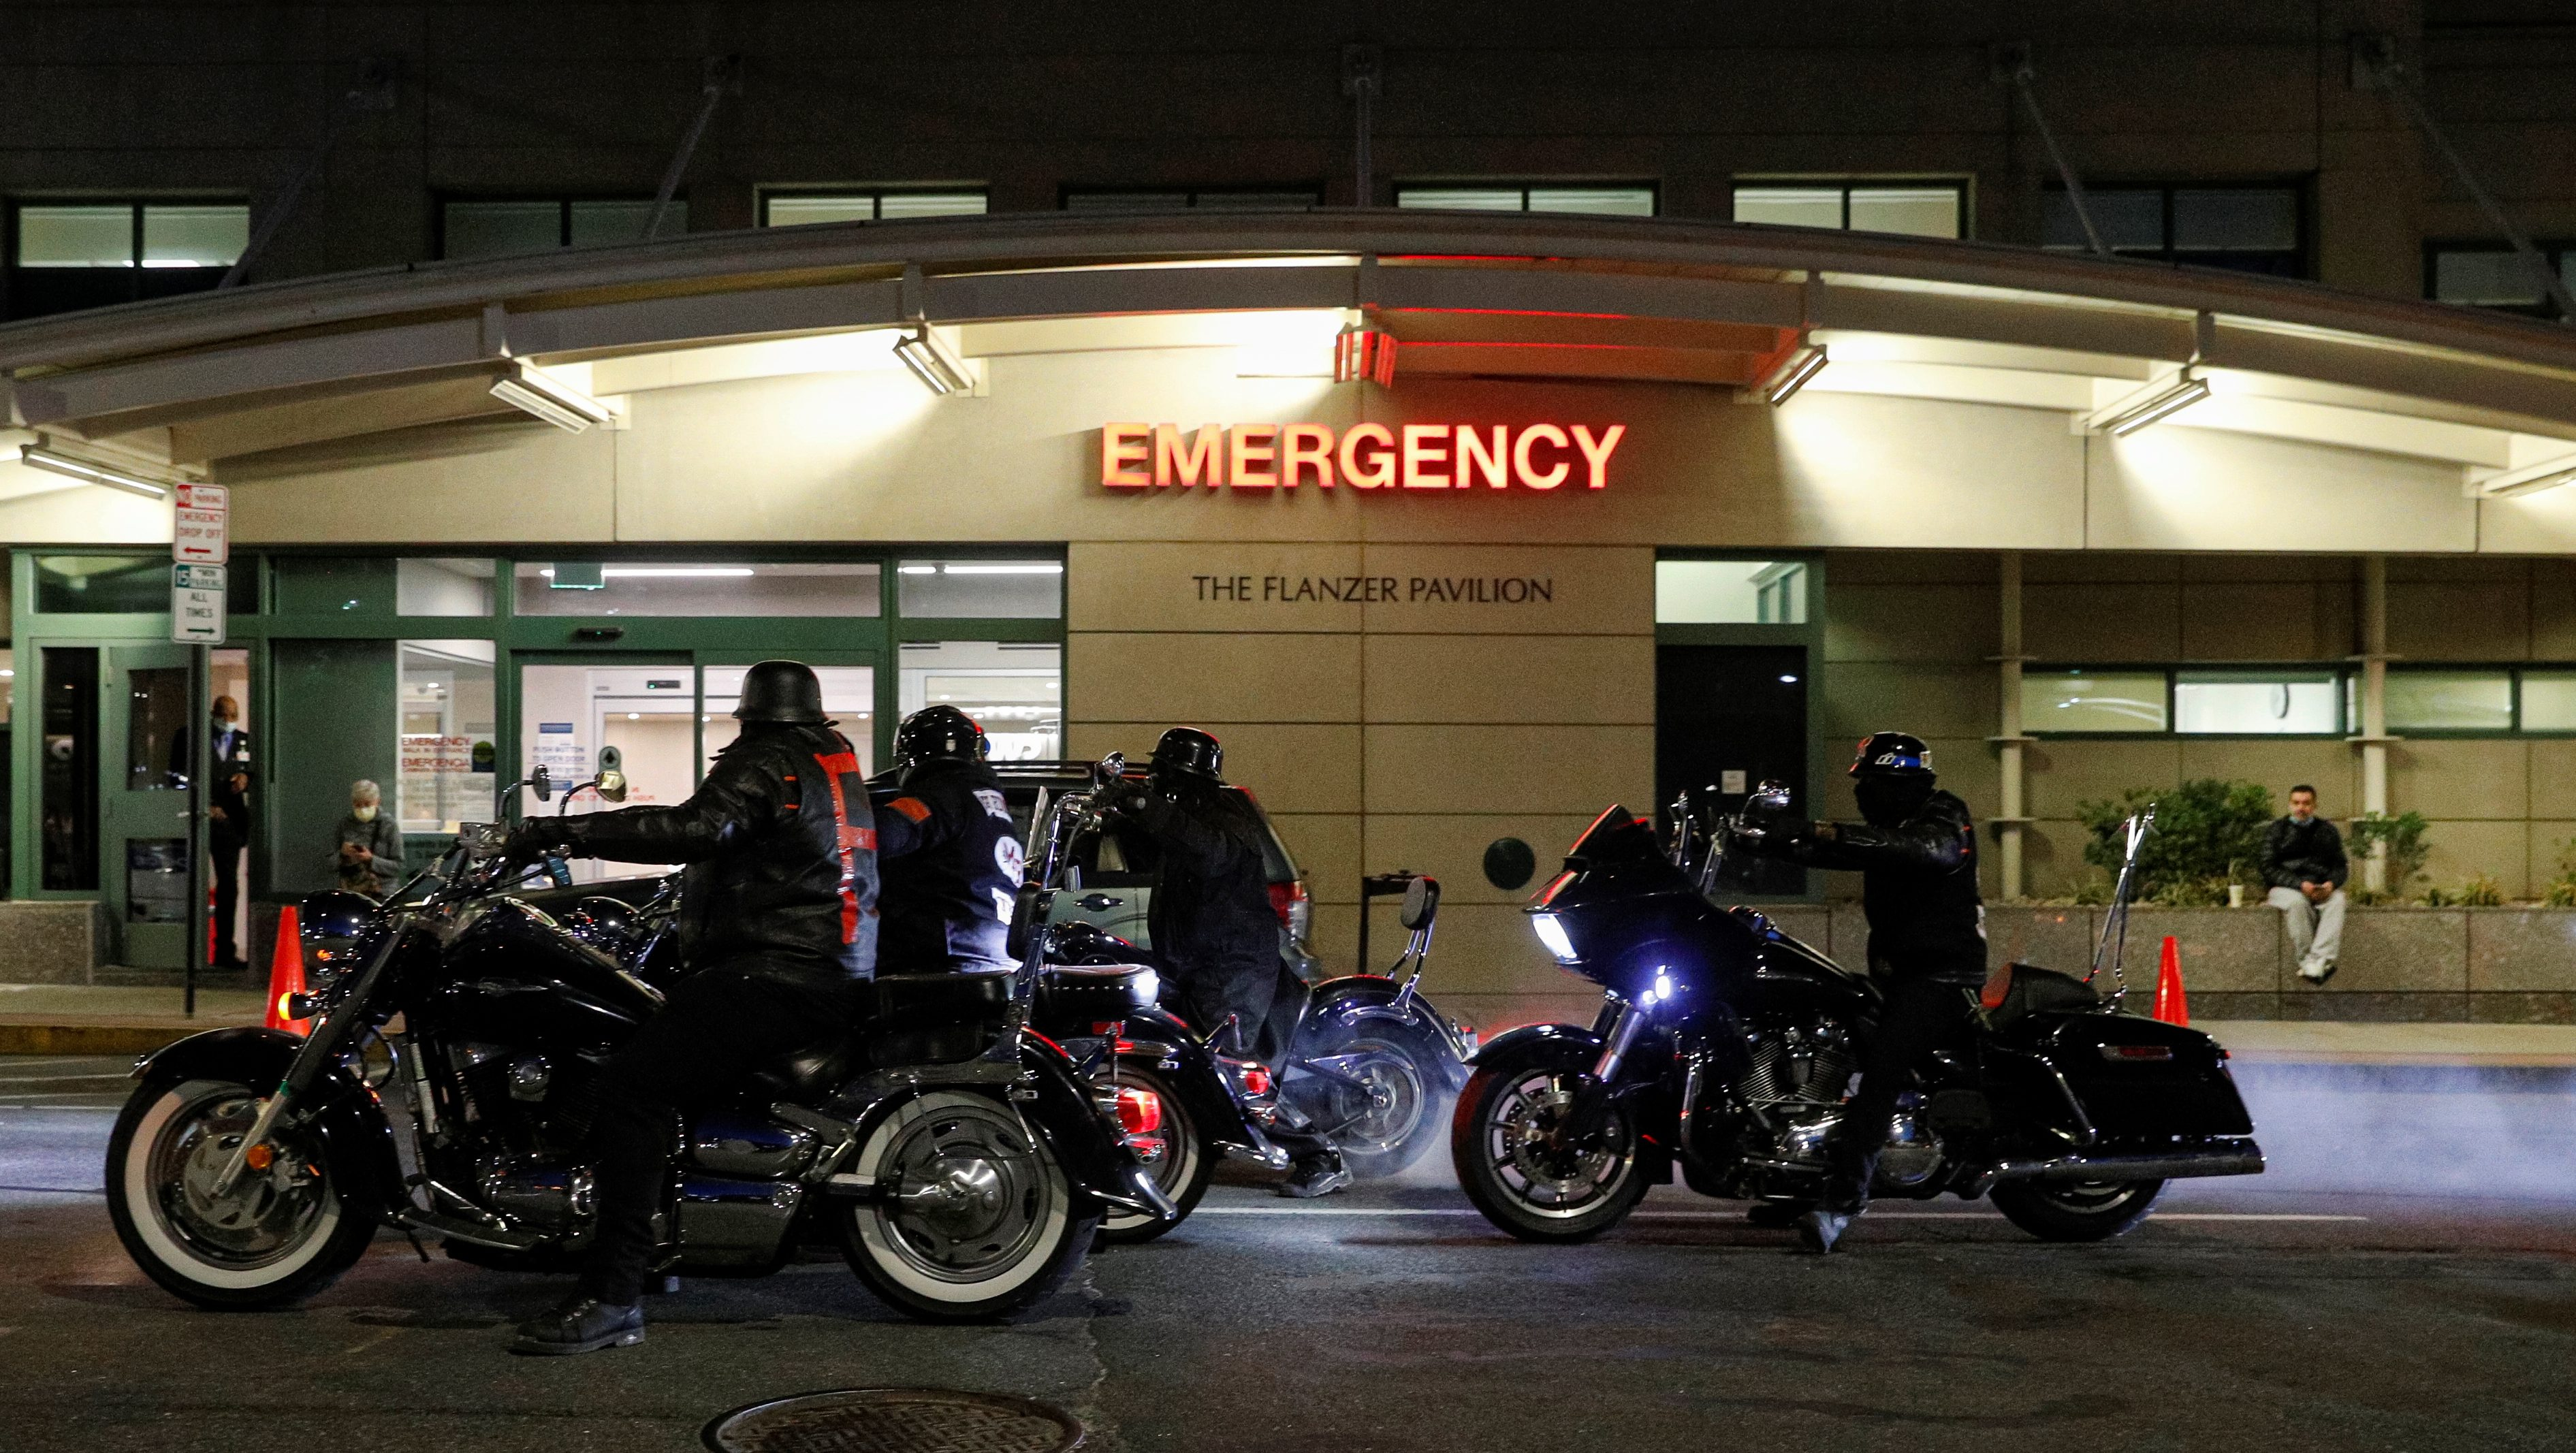 Members of a Motorcycle club perform a burn out during a vigil for musician and actor DMX outside White Plains Hospital in White Plains, New York